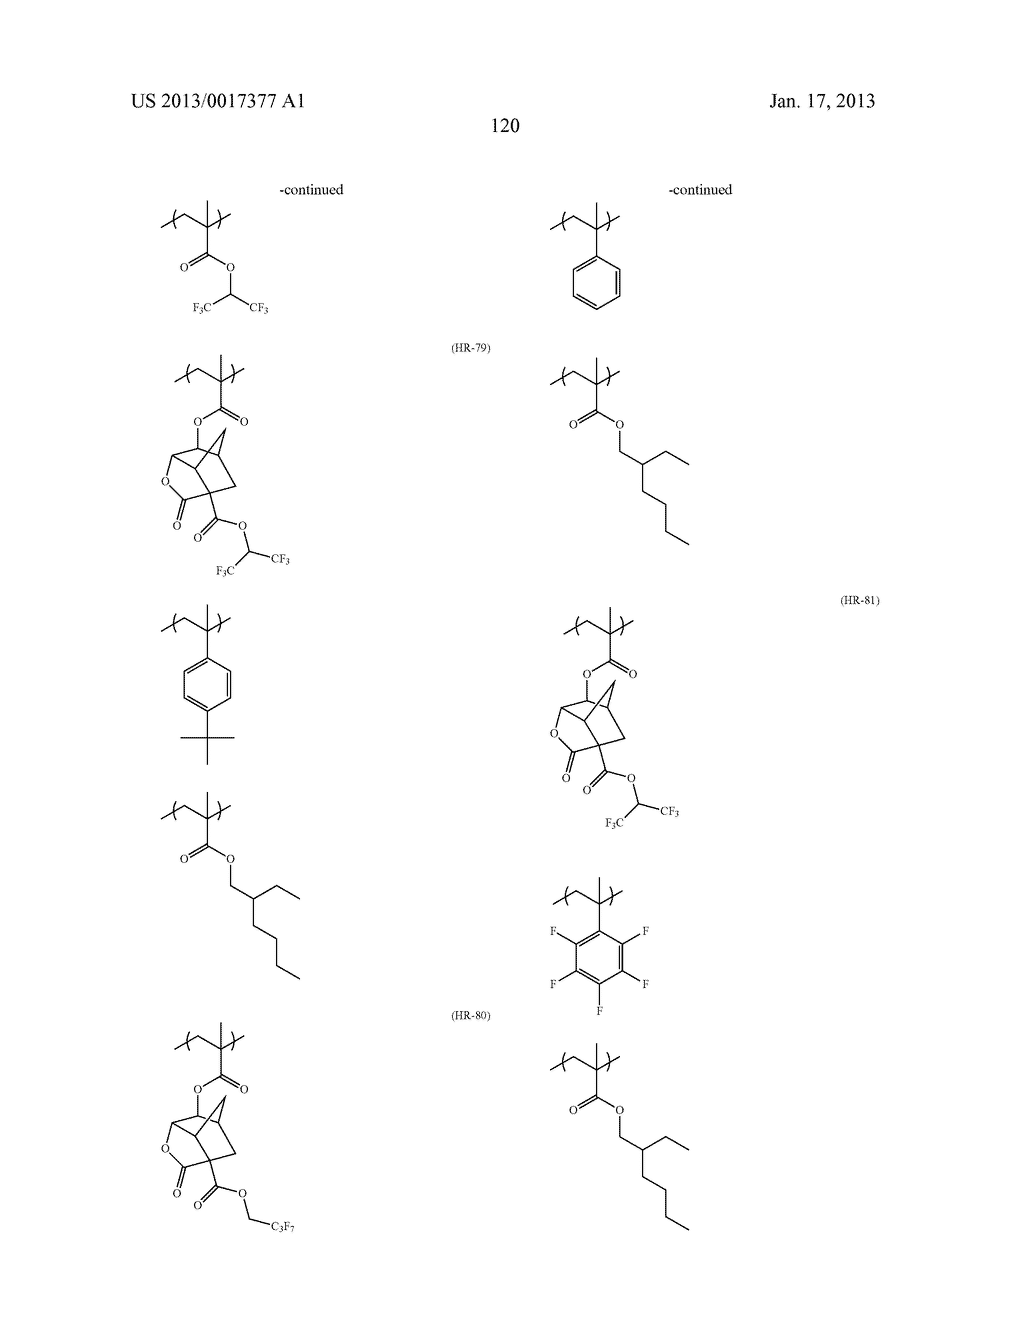 ACTINIC-RAY- OR RADIATION-SENSITIVE RESIN COMPOSITION AND METHOD OF     FORMING PATTERN USING THE SAMEAANM Kataoka; ShoheiAACI ShizuokaAACO JPAAGP Kataoka; Shohei Shizuoka JPAANM Iwato; KaoruAACI ShizuokaAACO JPAAGP Iwato; Kaoru Shizuoka JPAANM Kamimura; SouAACI ShizuokaAACO JPAAGP Kamimura; Sou Shizuoka JPAANM Tsuchihashi; ToruAACI ShizuokaAACO JPAAGP Tsuchihashi; Toru Shizuoka JPAANM Enomoto; YuichiroAACI ShizuokaAACO JPAAGP Enomoto; Yuichiro Shizuoka JPAANM Fujii; KanaAACI ShizuokaAACO JPAAGP Fujii; Kana Shizuoka JPAANM Mizutani; KazuyoshiAACI ShizuokaAACO JPAAGP Mizutani; Kazuyoshi Shizuoka JPAANM Tarutani; ShinjiAACI ShizuokaAACO JPAAGP Tarutani; Shinji Shizuoka JPAANM Kato; KeitaAACI ShizuokaAACO JPAAGP Kato; Keita Shizuoka JP - diagram, schematic, and image 121